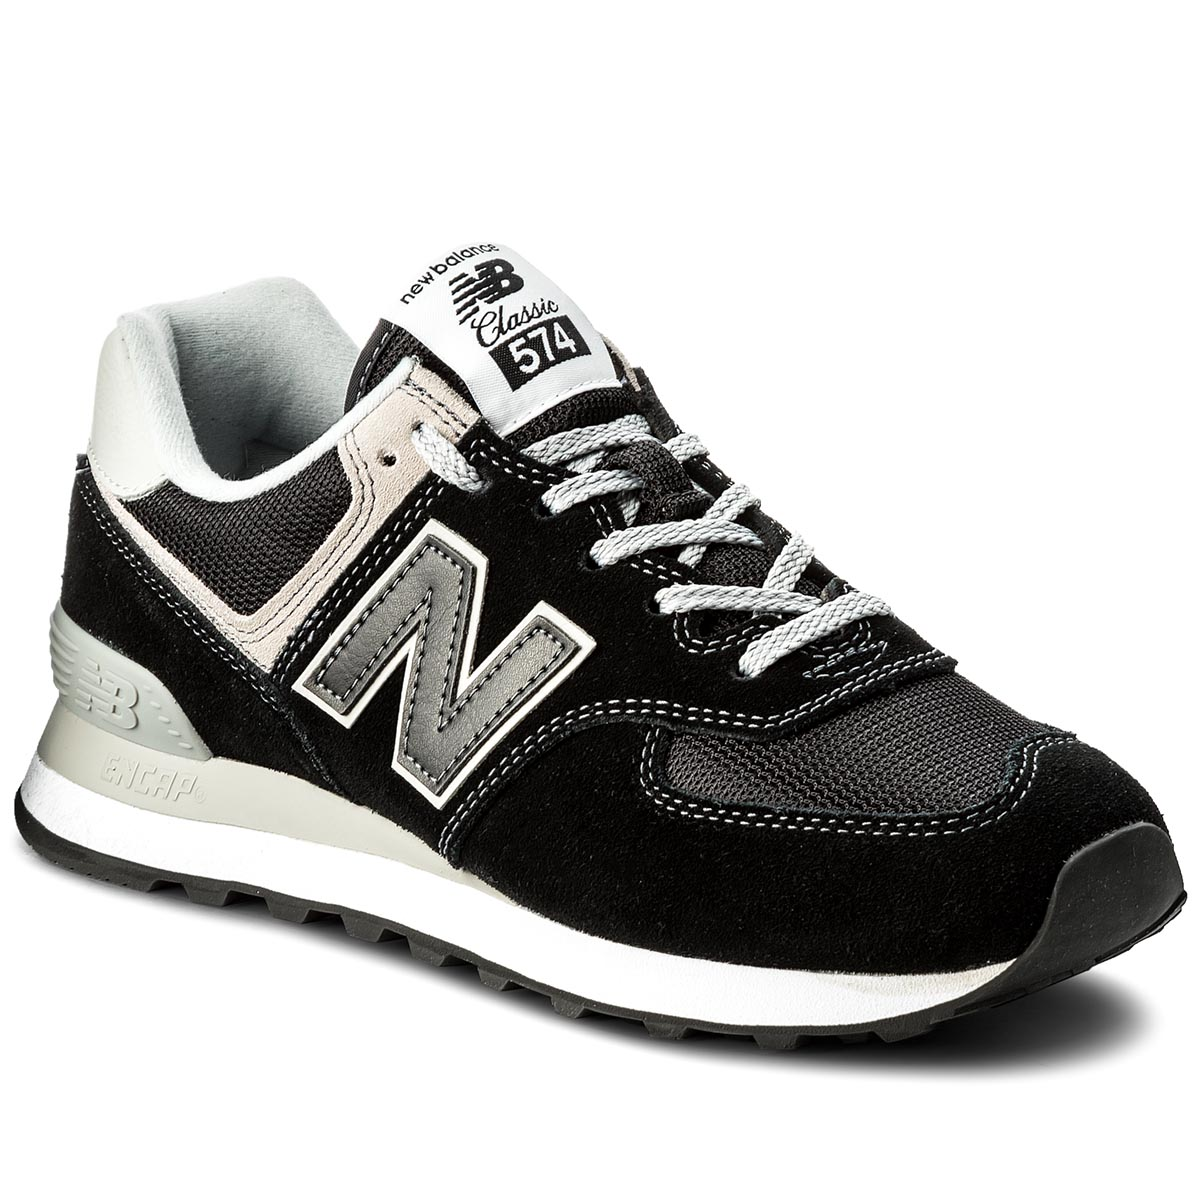 Sneakers NEW BALANCE - ML574EGK Gri Negru